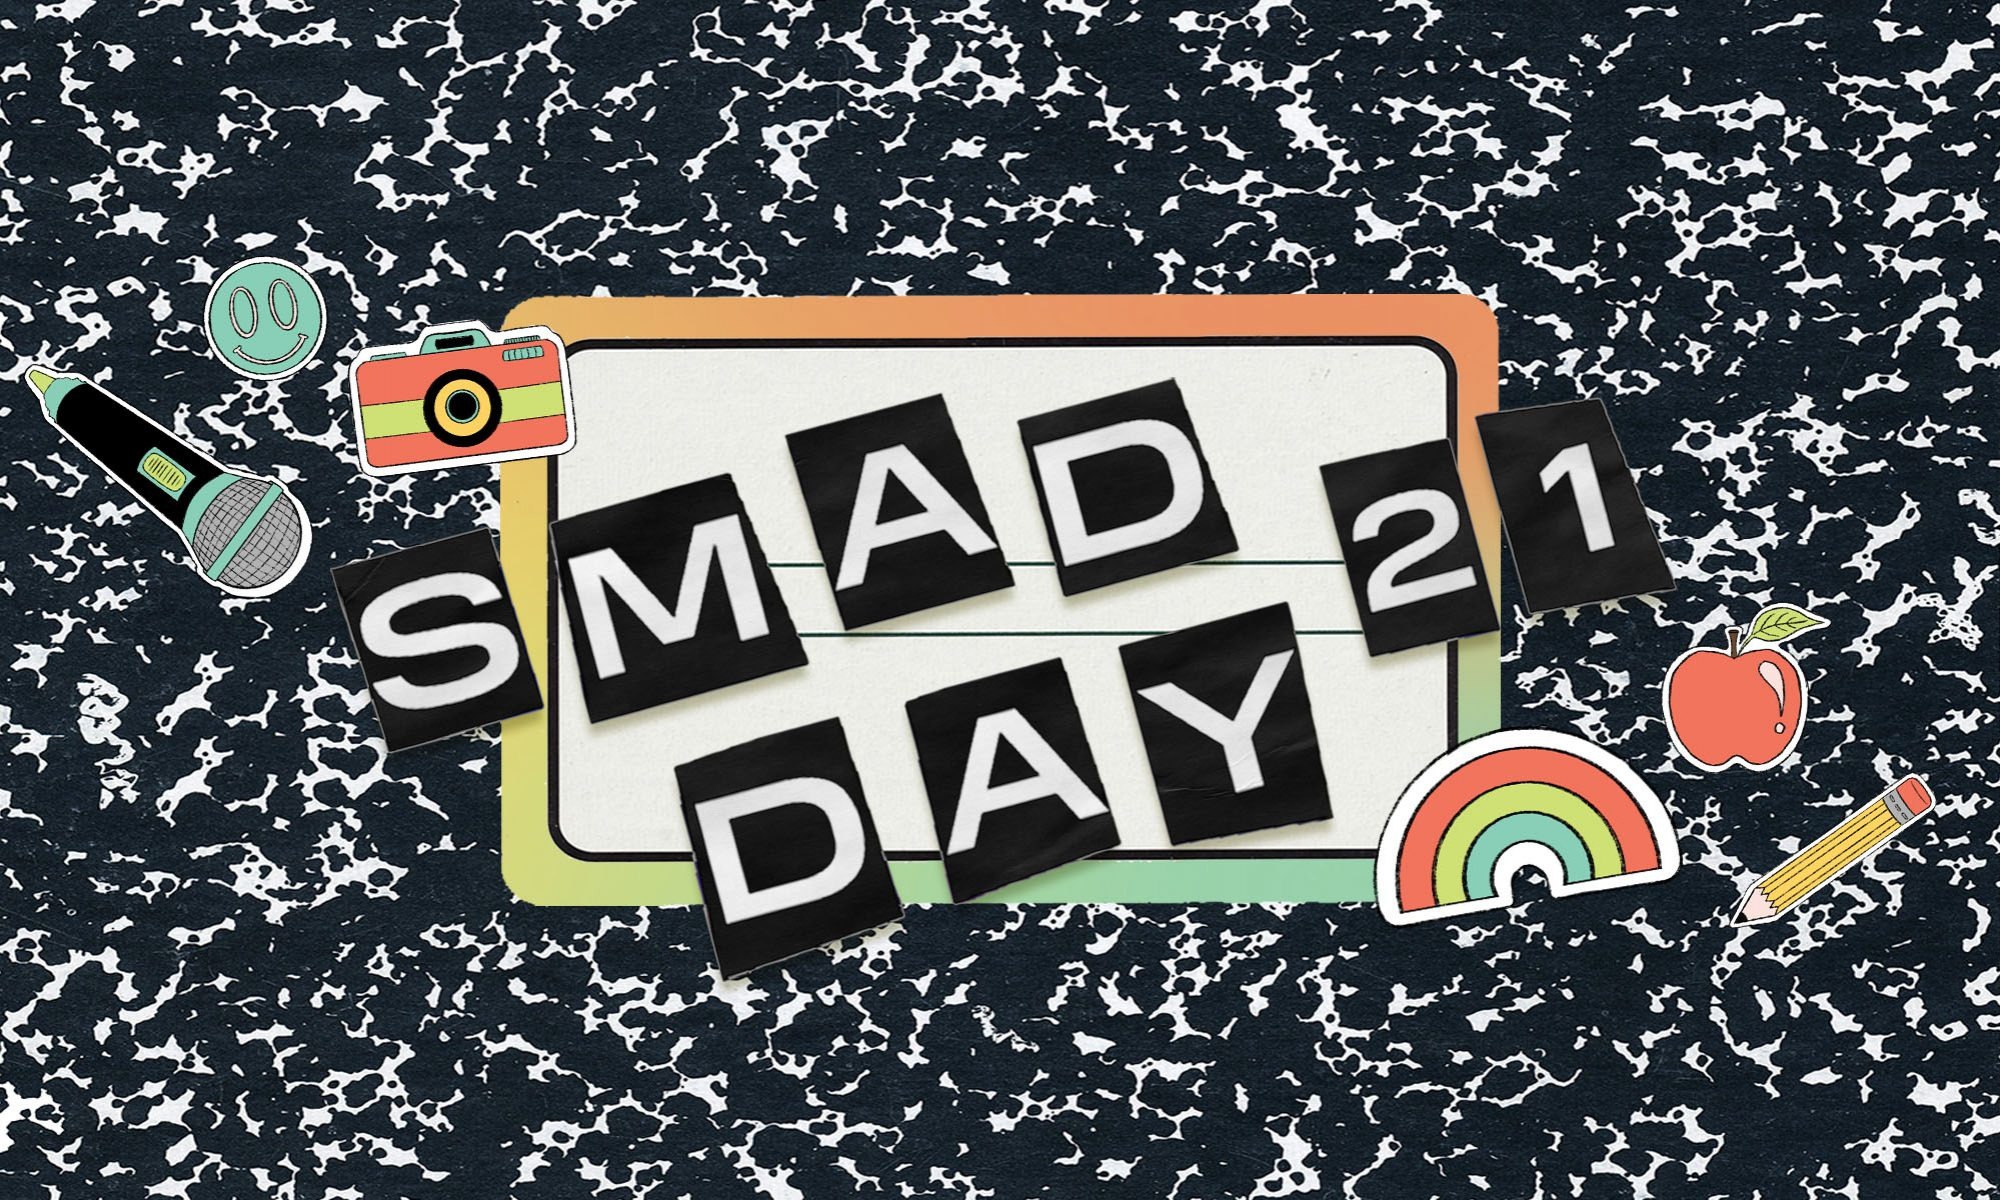 SMAD Day '21